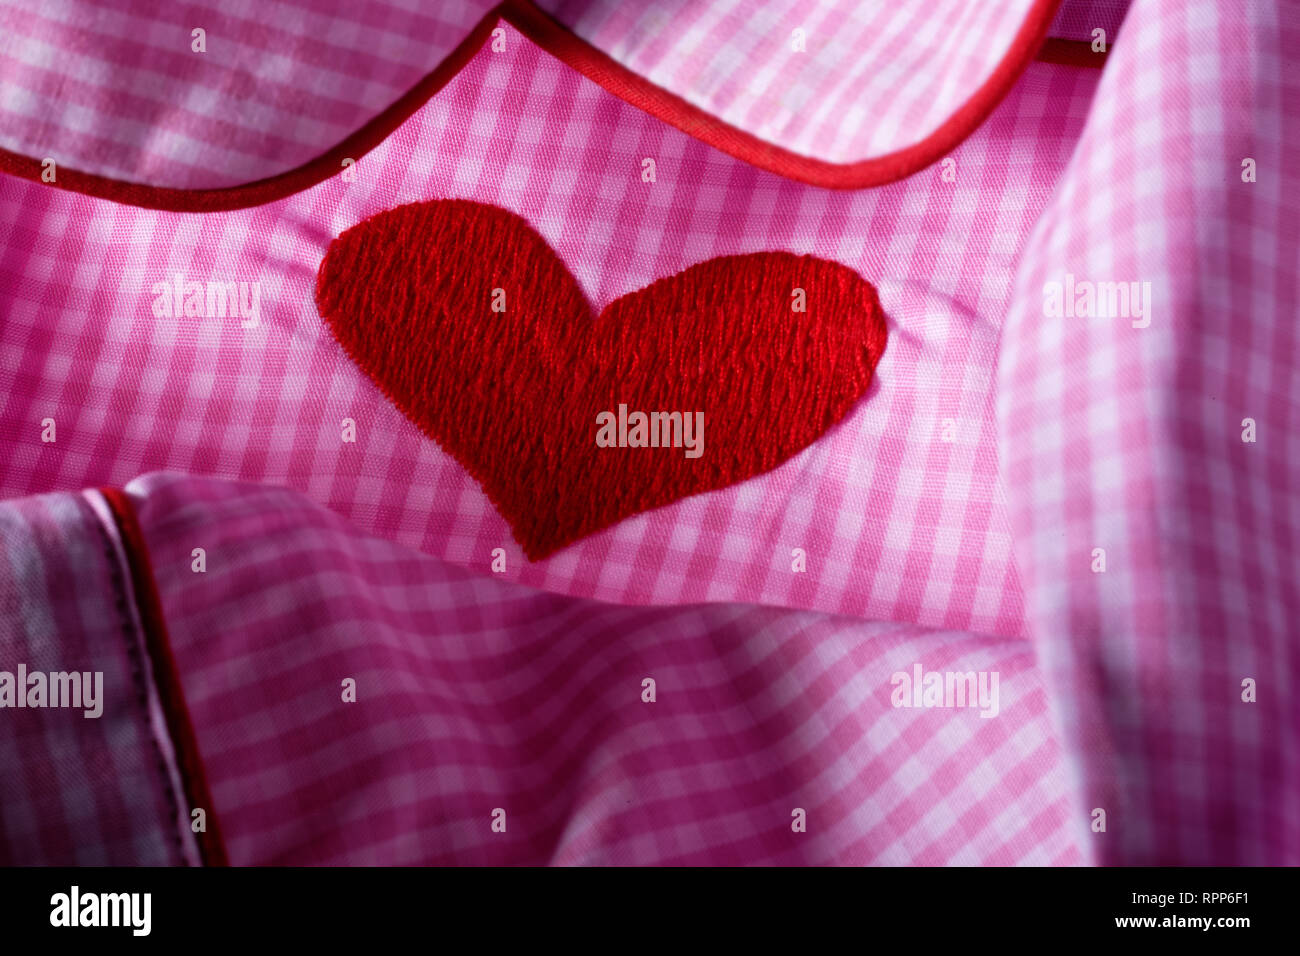 Pink and white checked gingham fabric with red heart. Cotton nightwear. - Stock Image